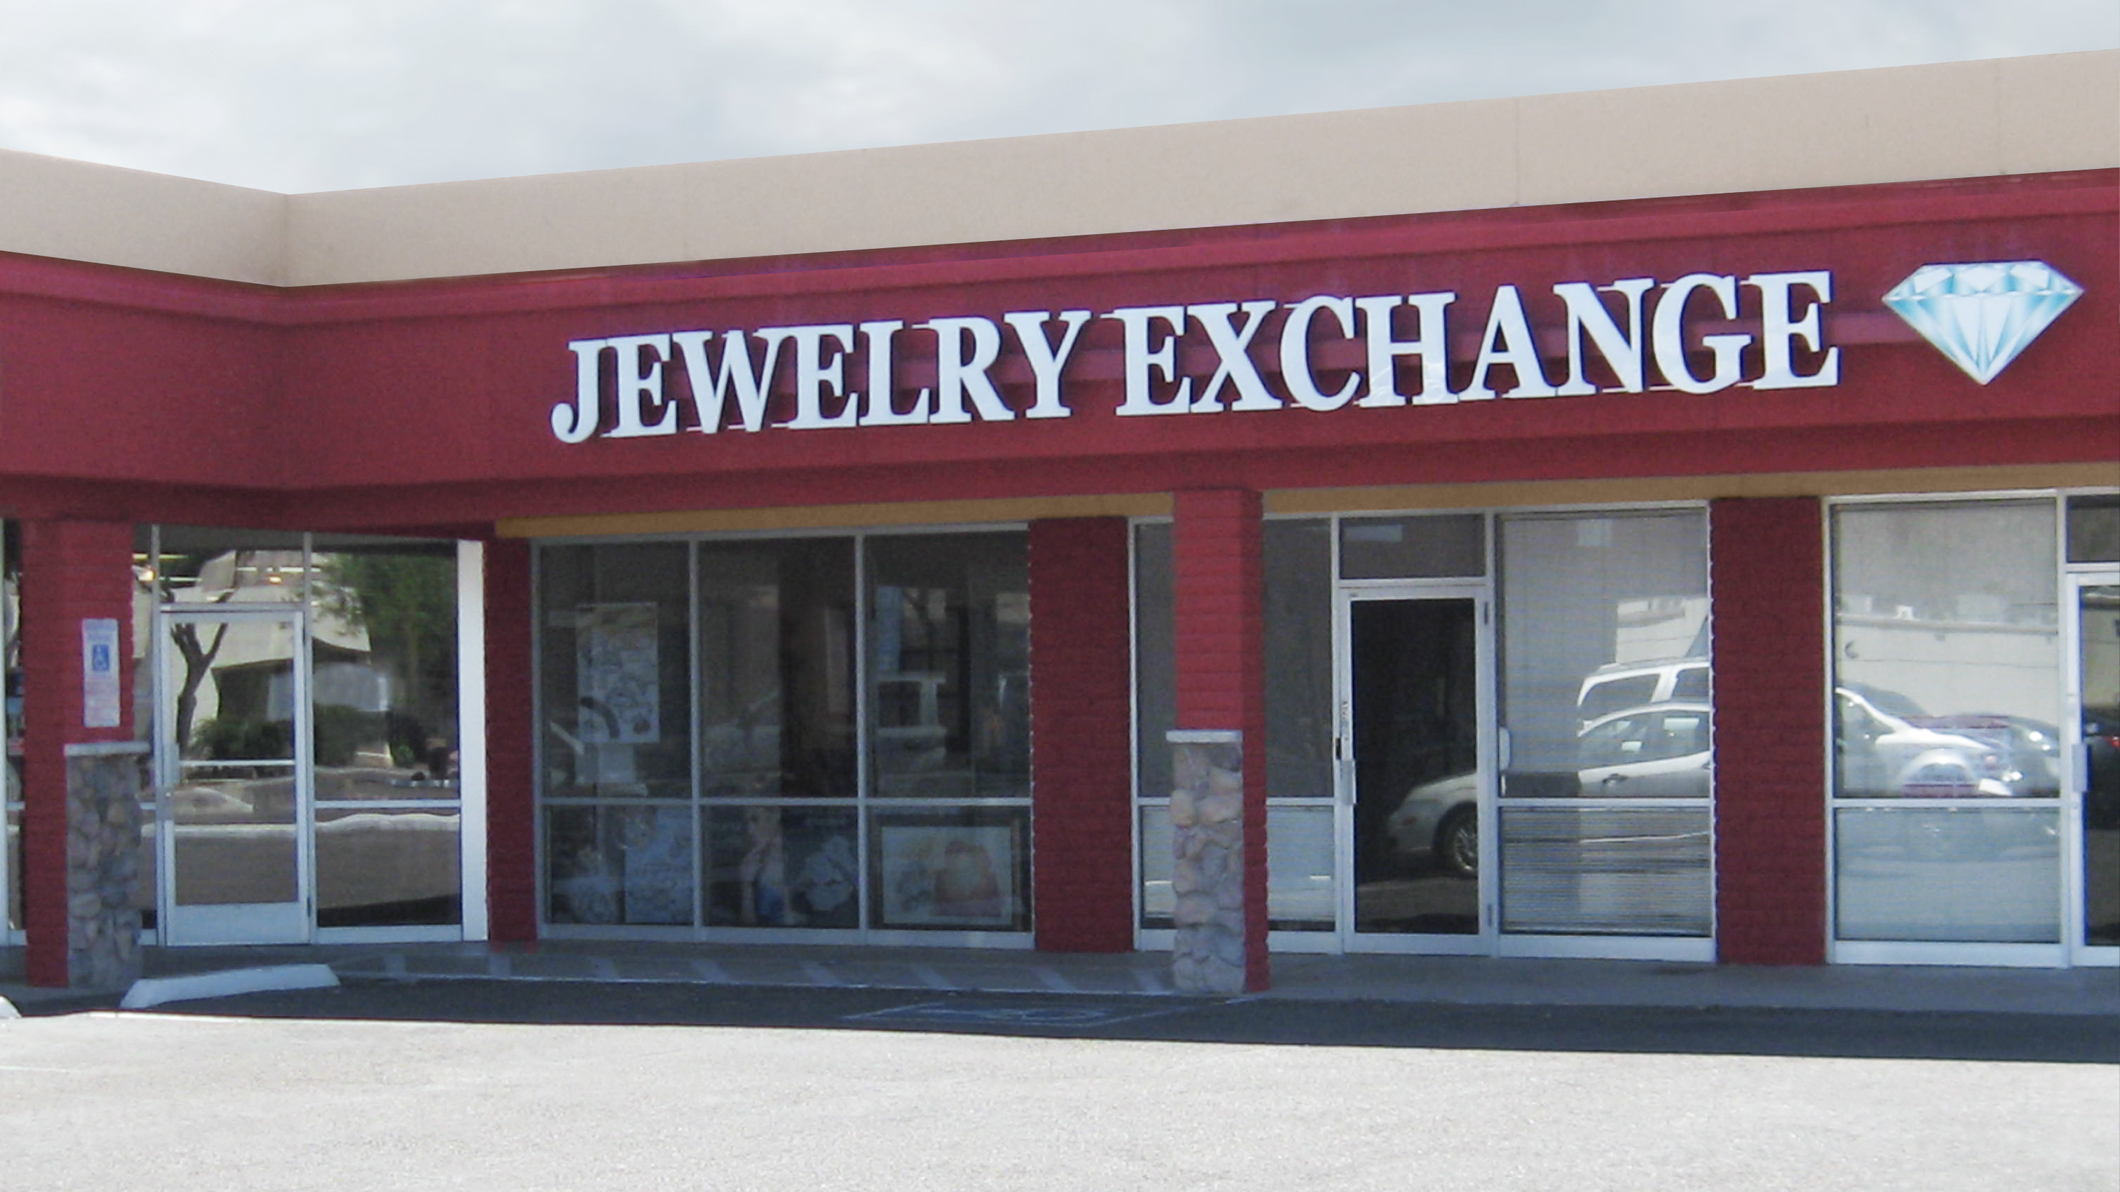 The Jewelry Exchange in Phoenix   Jewelry Store   Engagement Ring Specials image 0